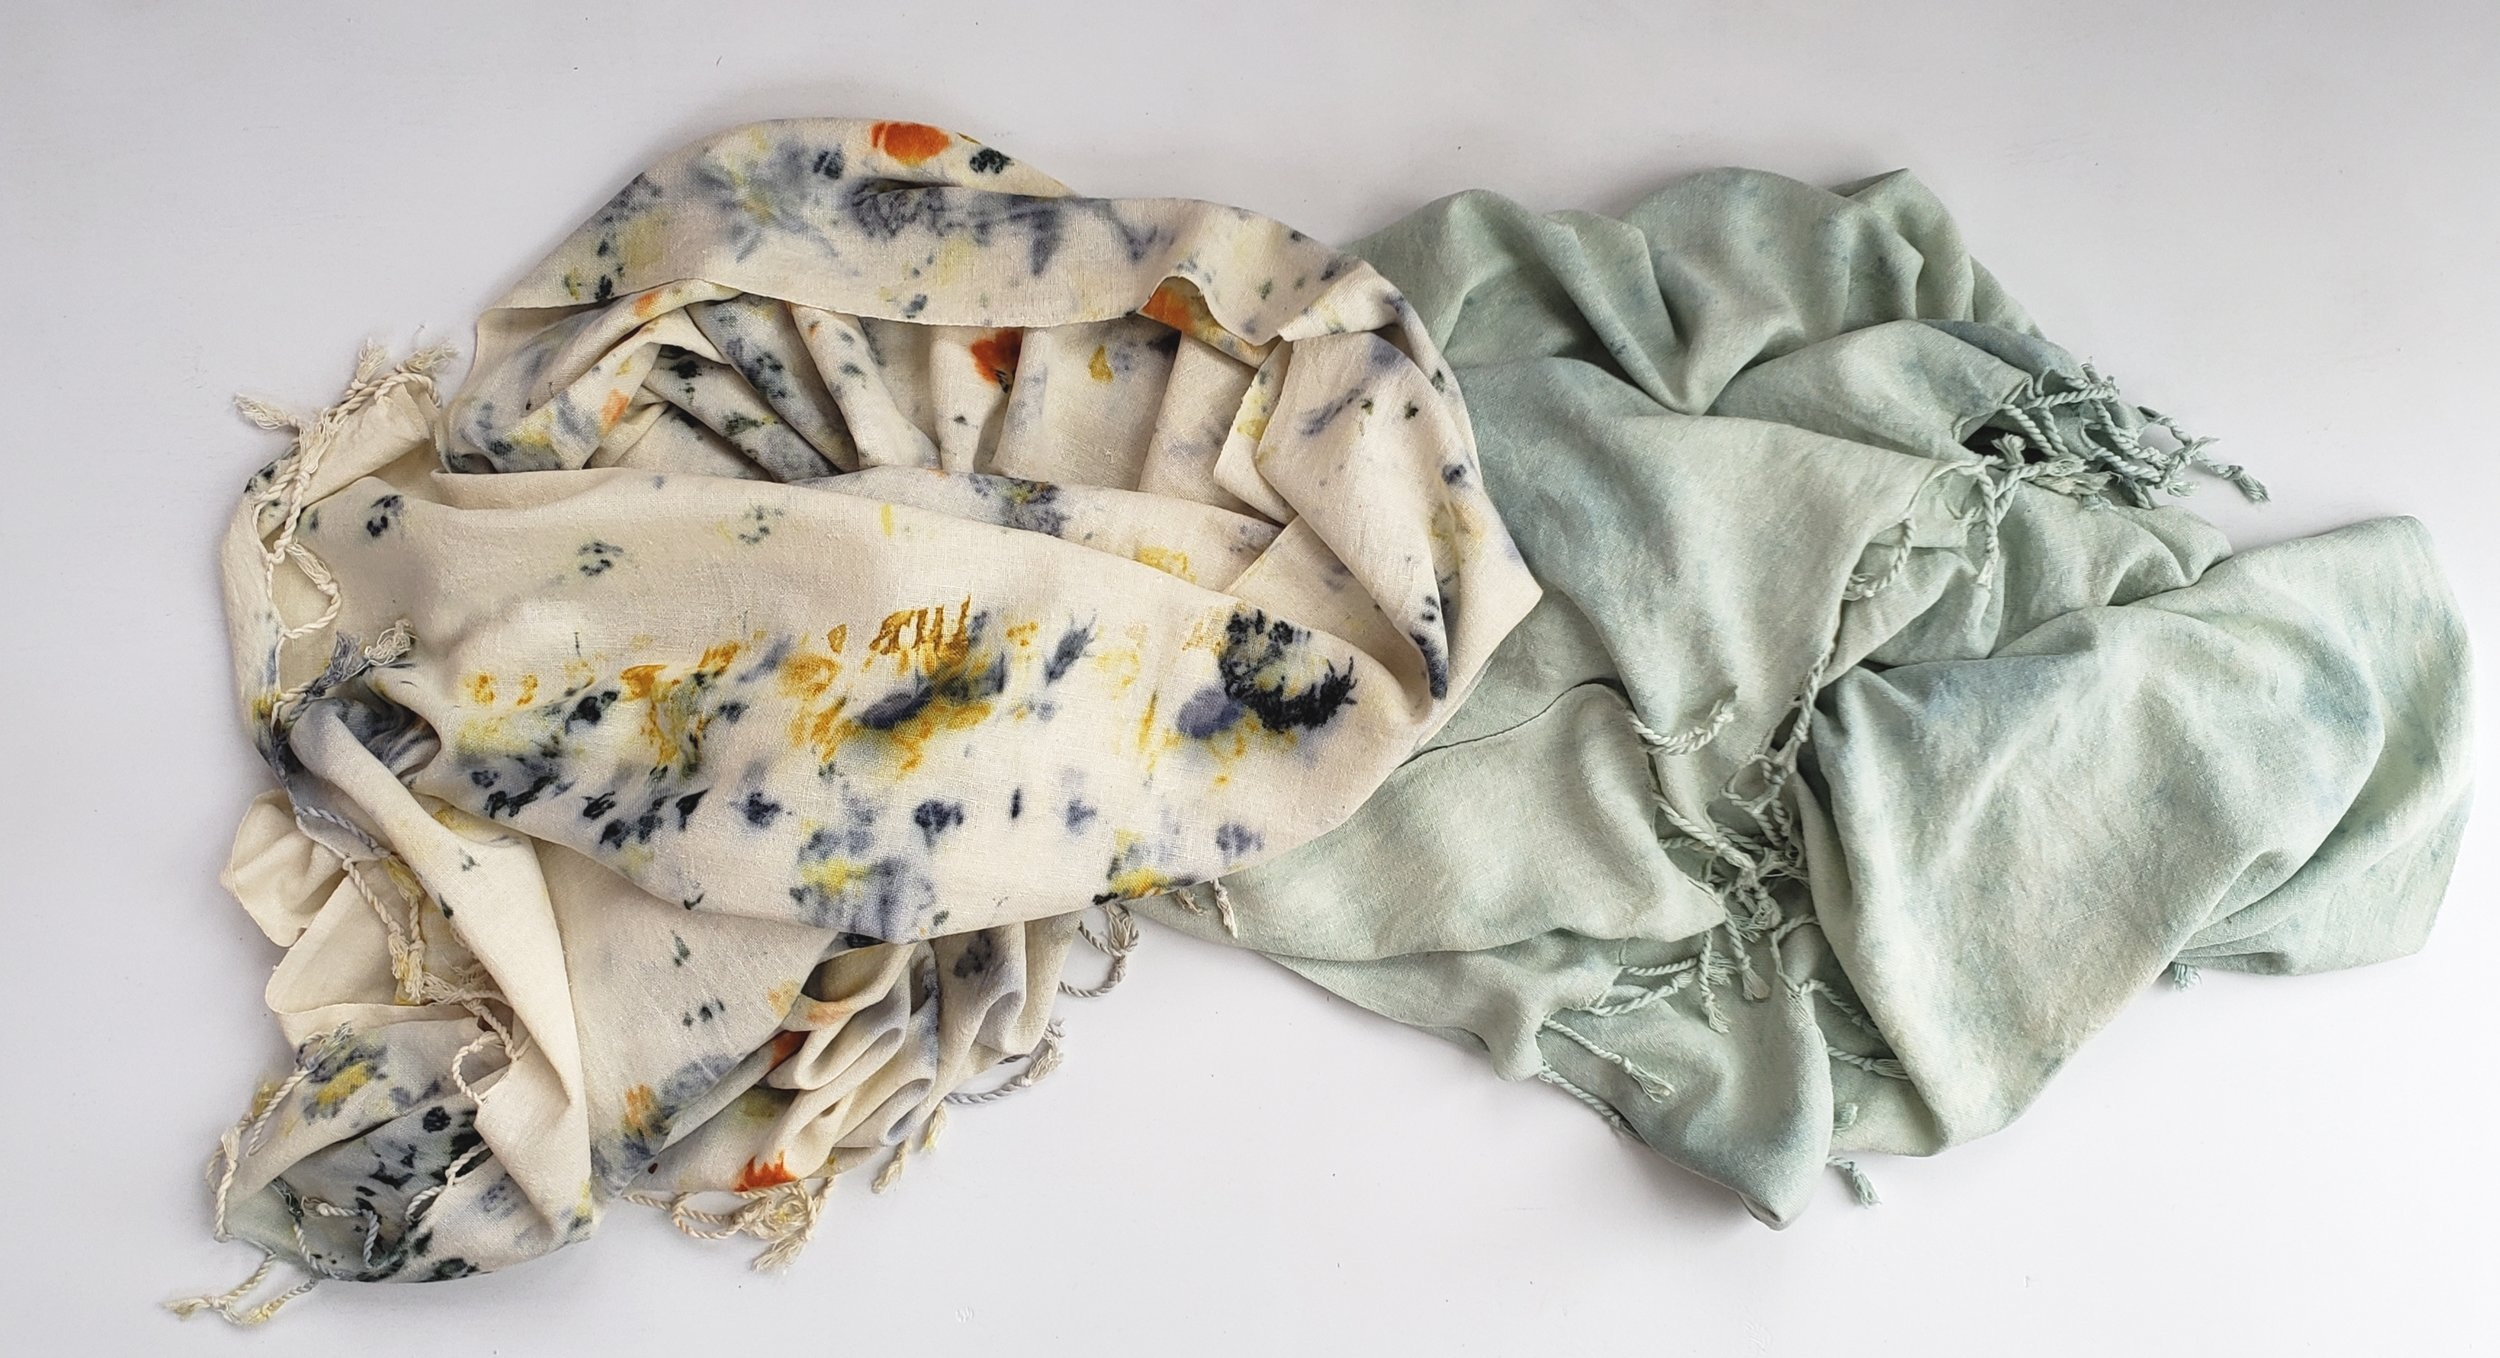 Each scarf is hand dyed resulting in one of a kind pieces